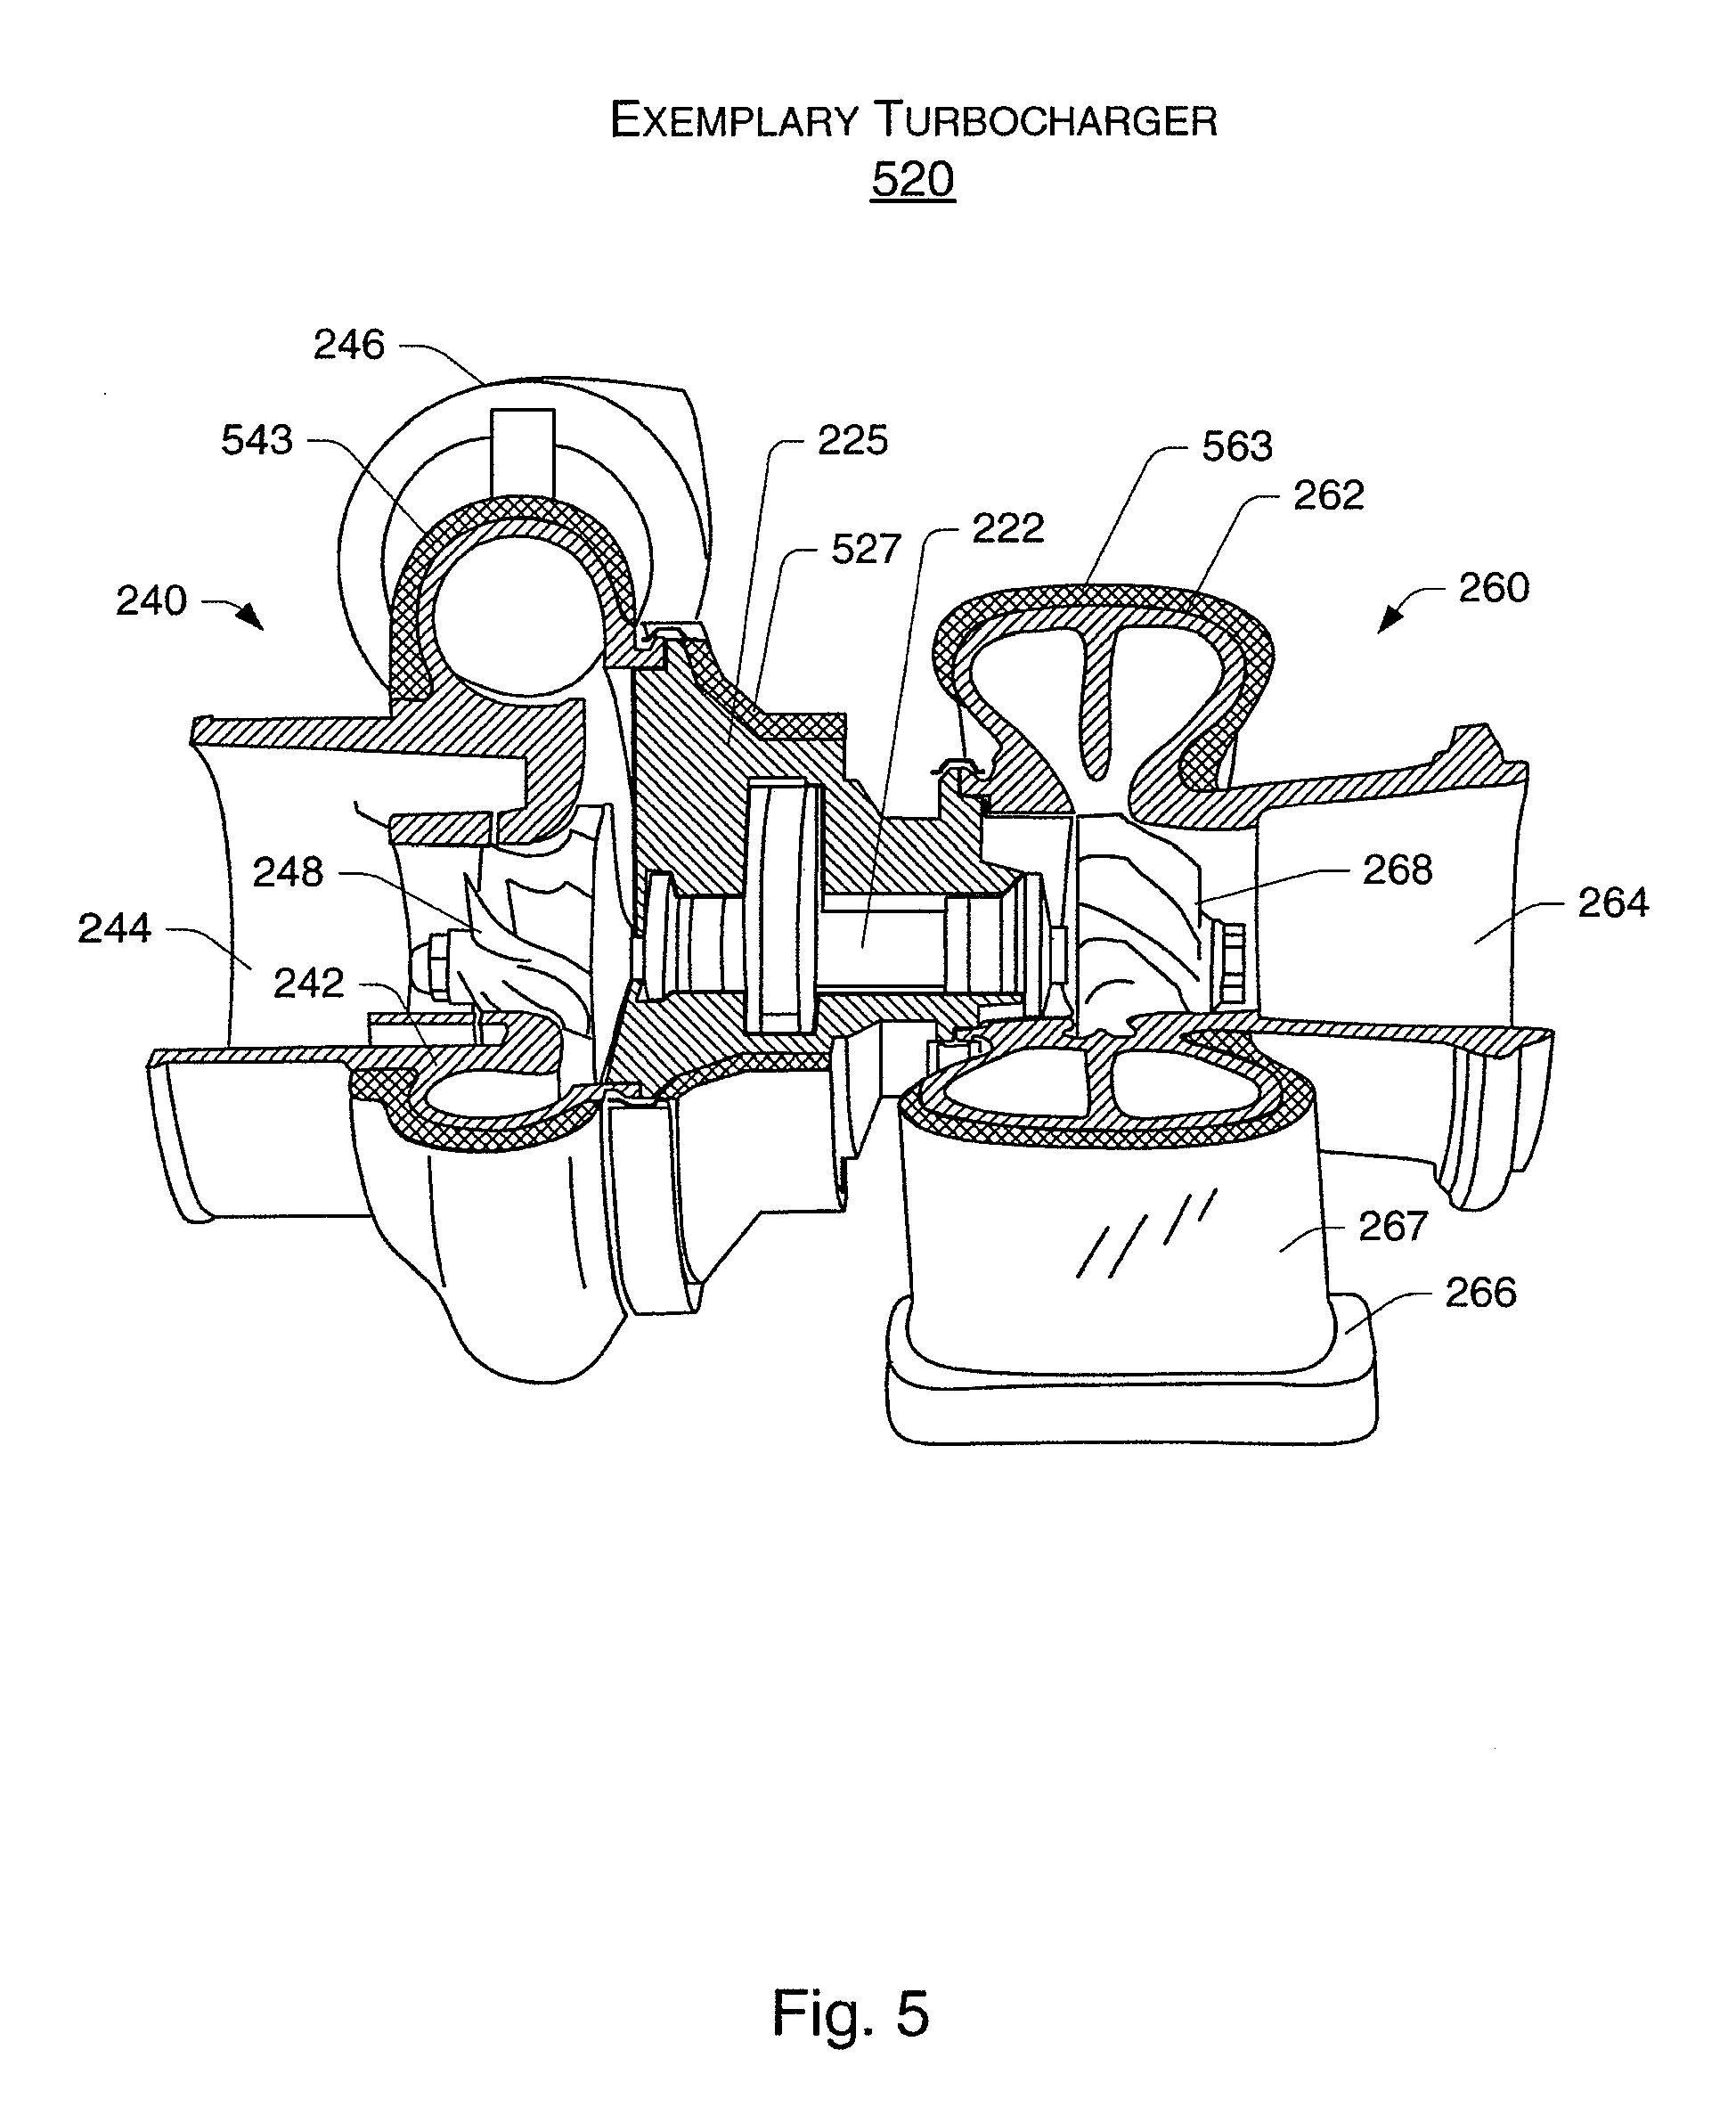 Electric Turbocharger Patents: Turbocharger Containment Shield